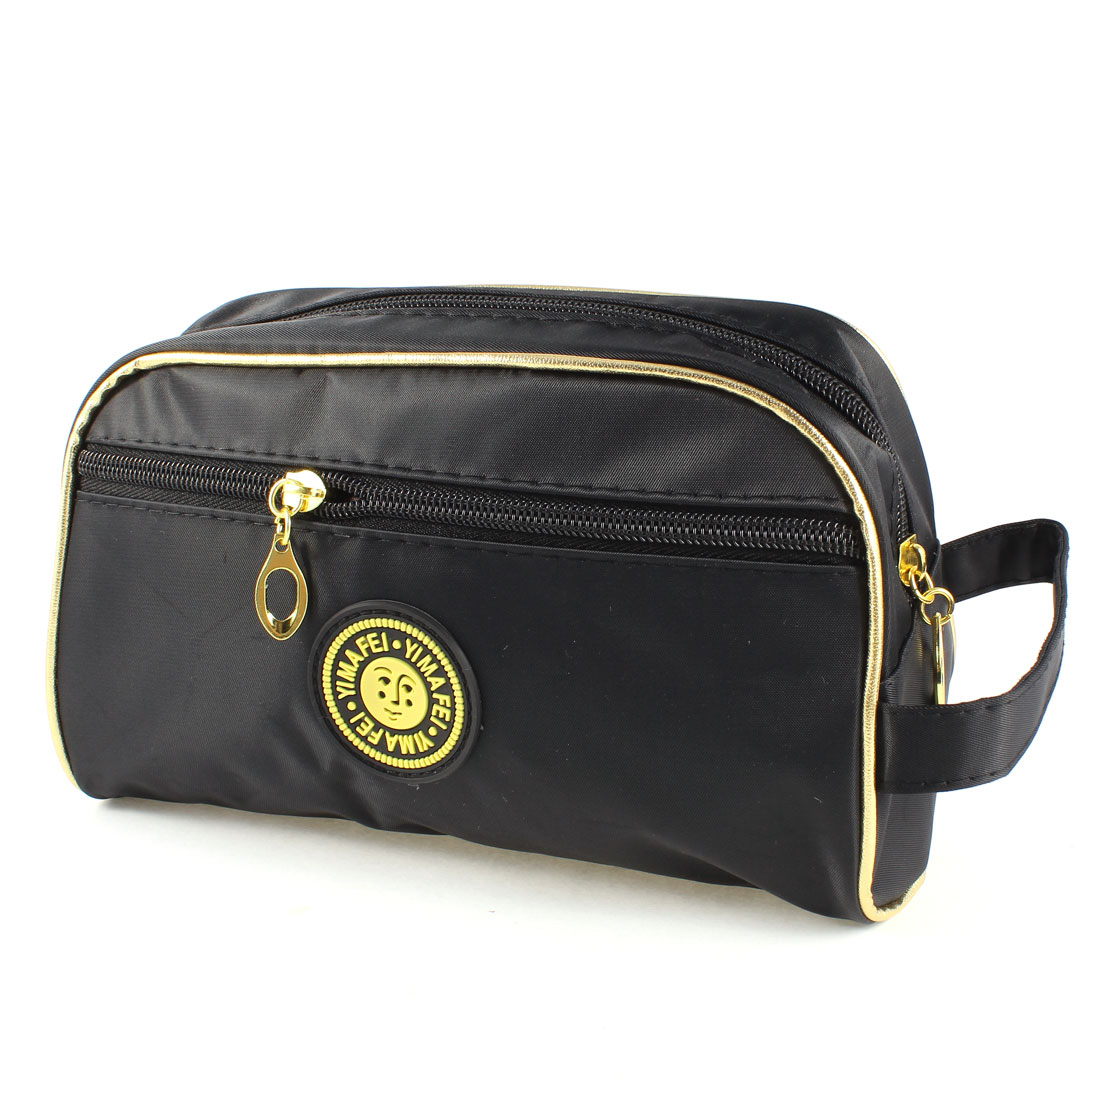 Zipper Closure Polyester Rectangular Black Cosmetic Makeup Bag for Women